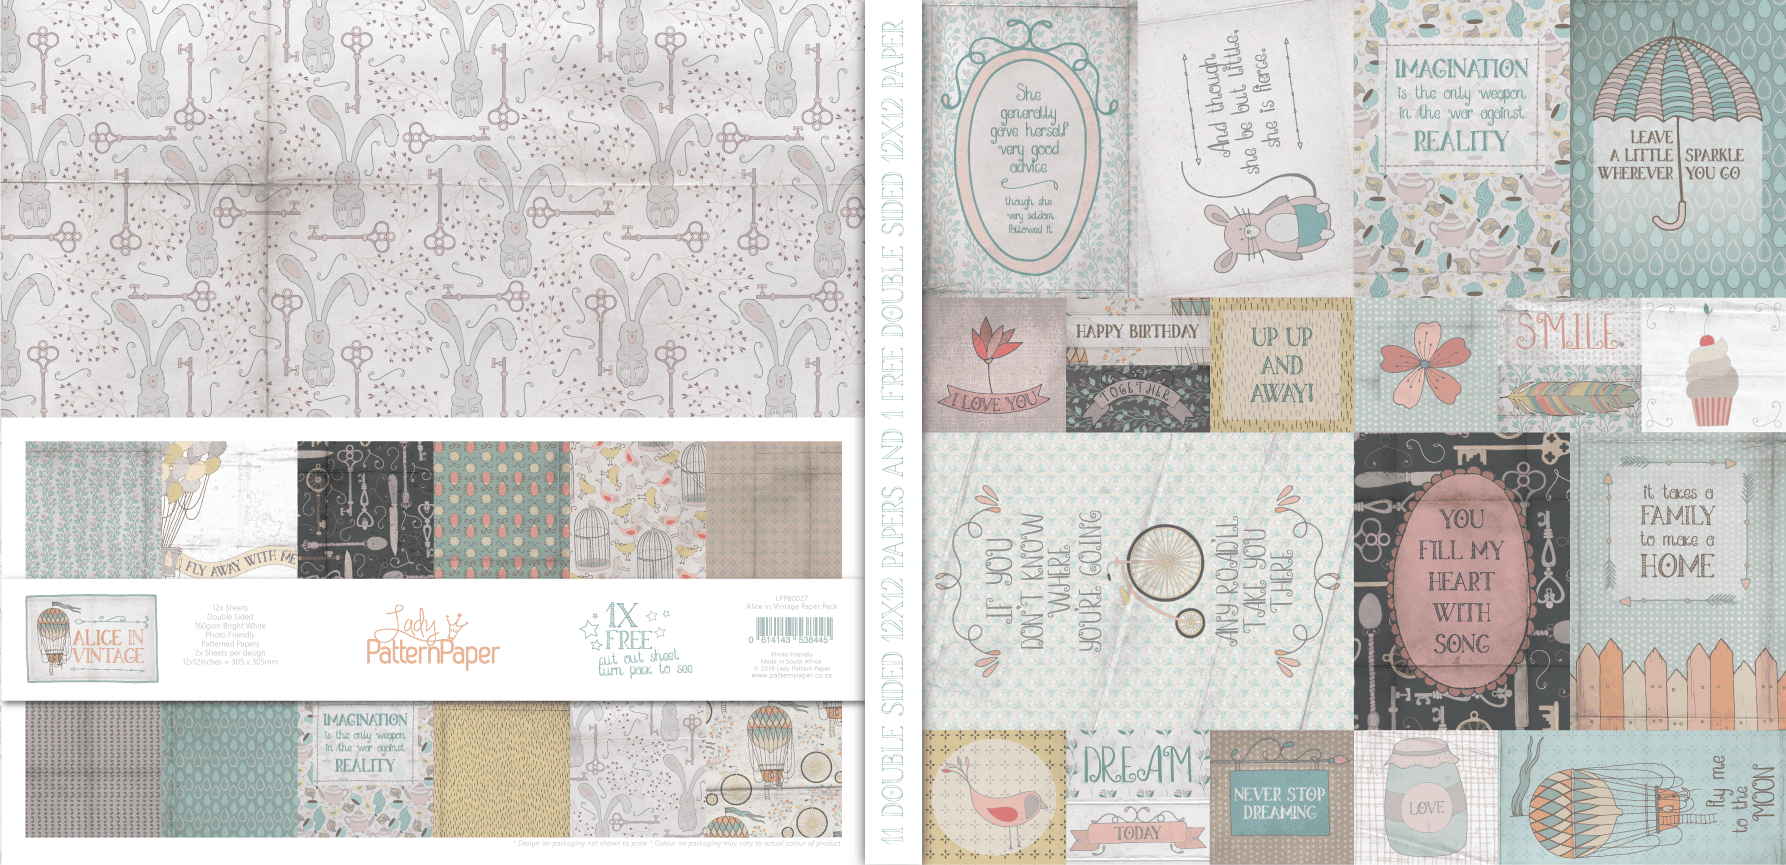 LPPB0027 - Alice in Vintage - Paper Pack